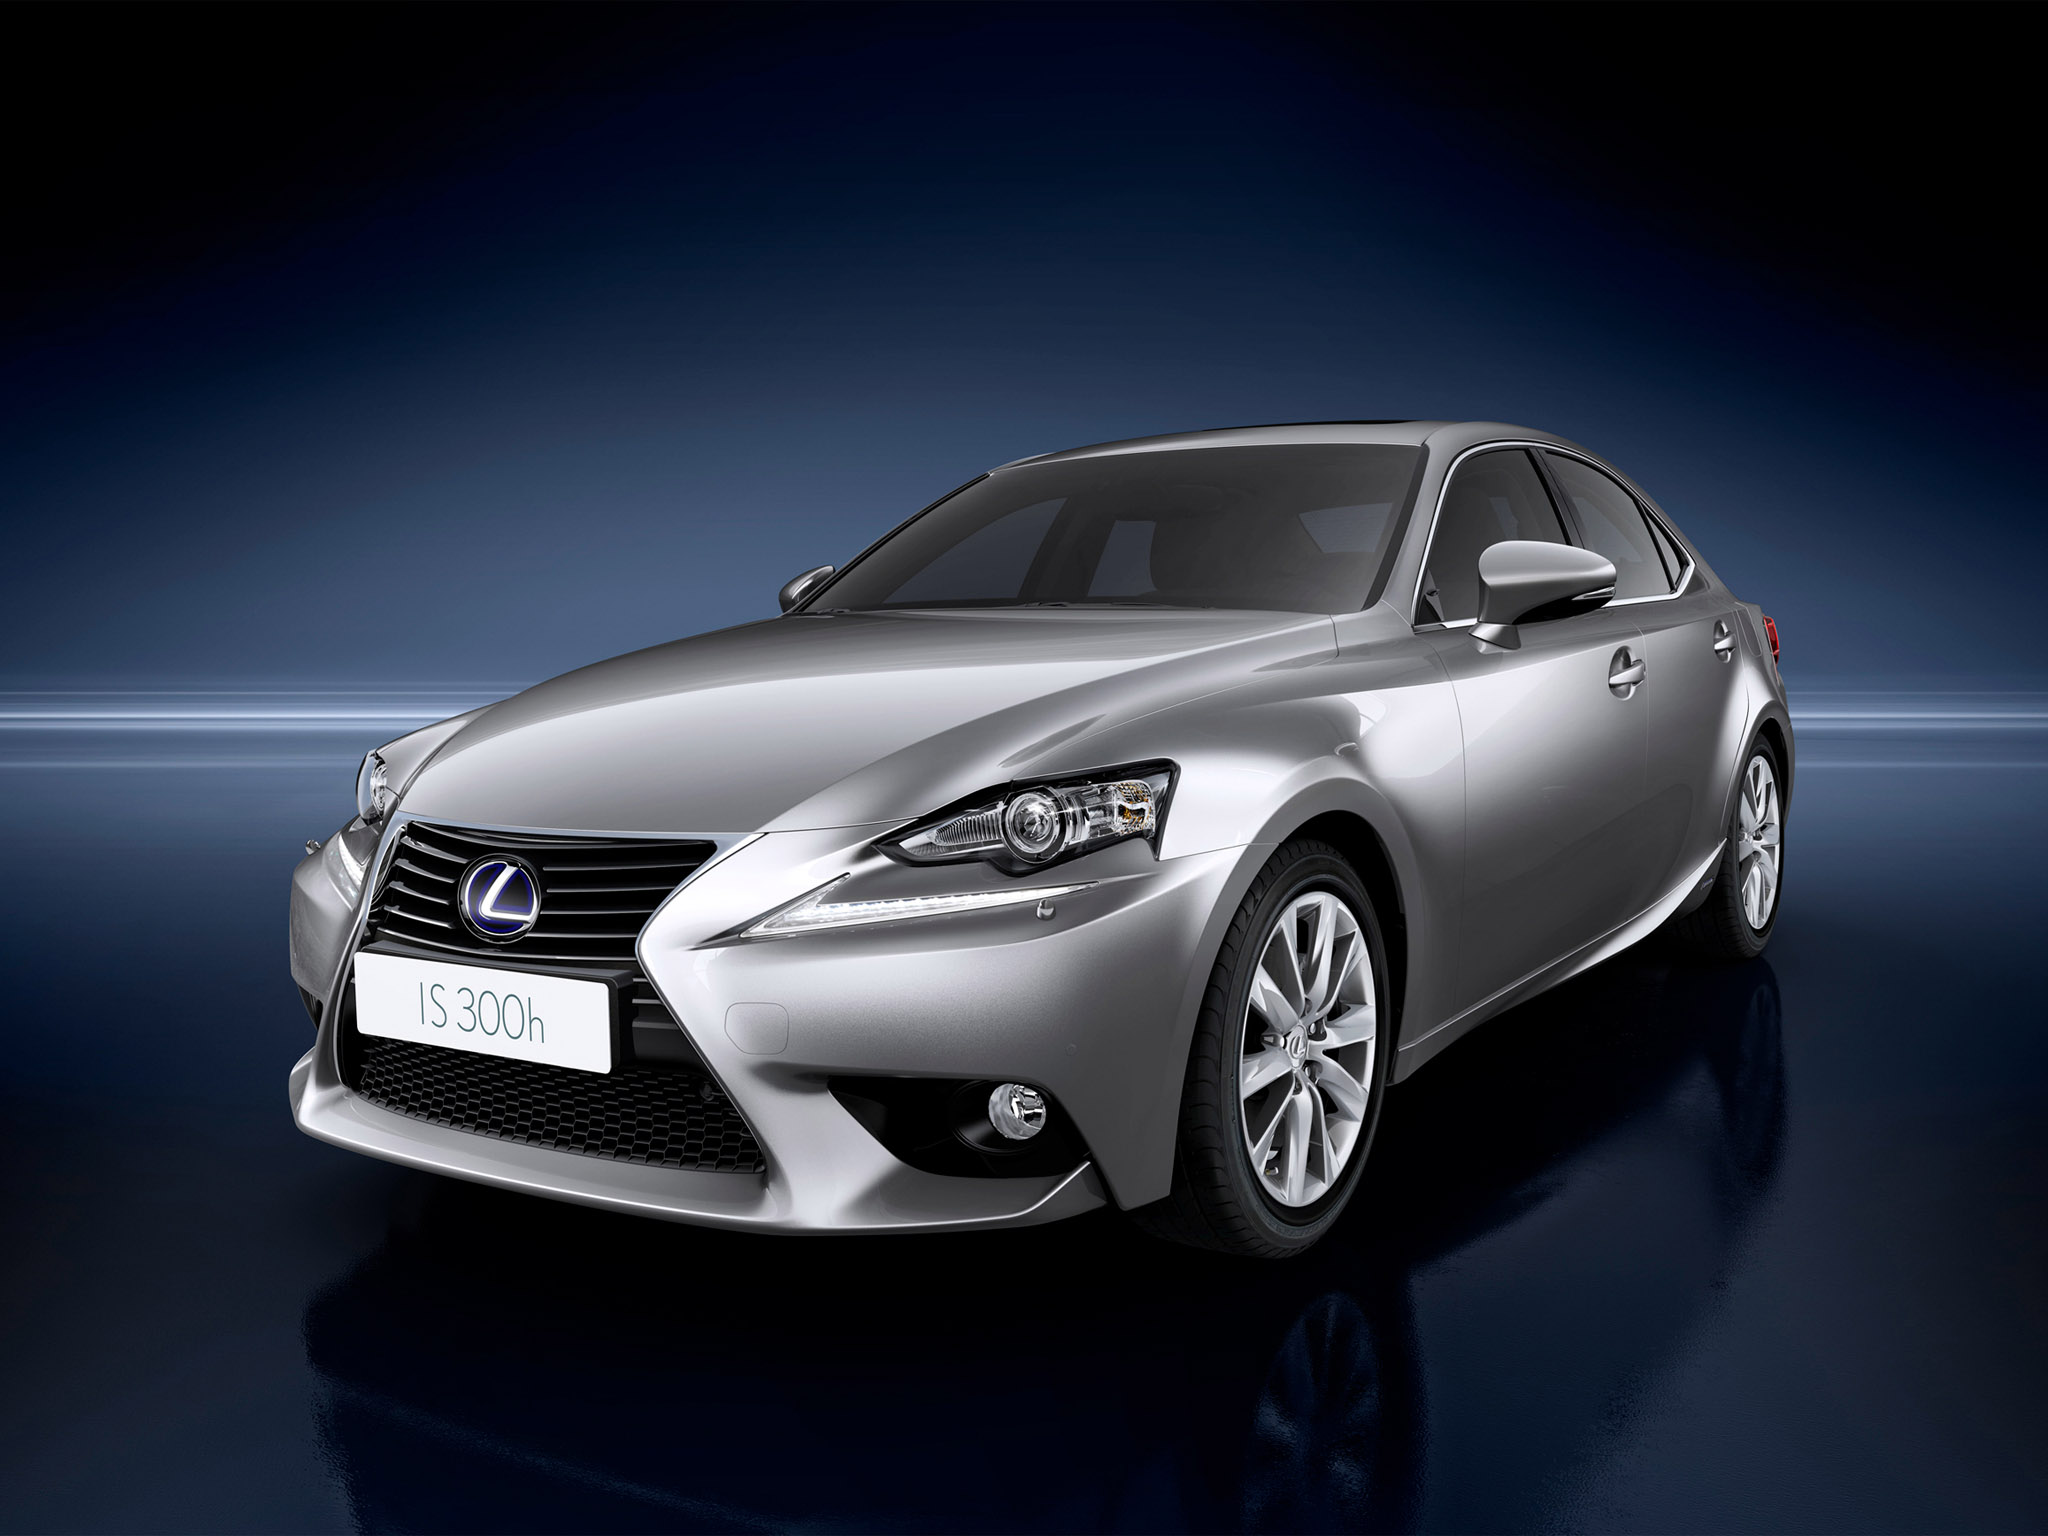 2013-07-19-lexus_is300h2013_r7.jpg